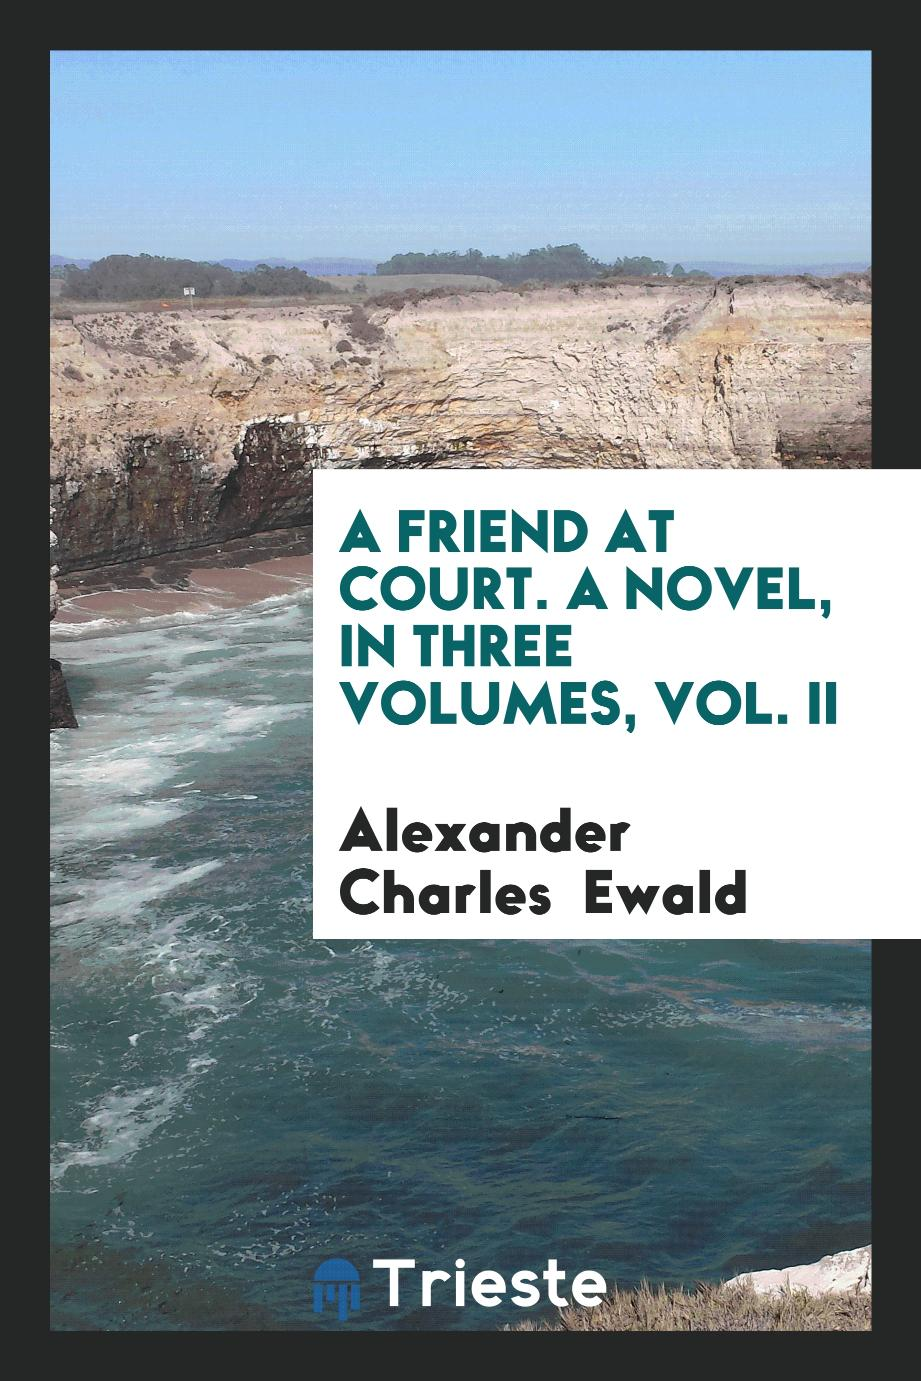 A Friend at Court. A Novel, in Three Volumes, Vol. II